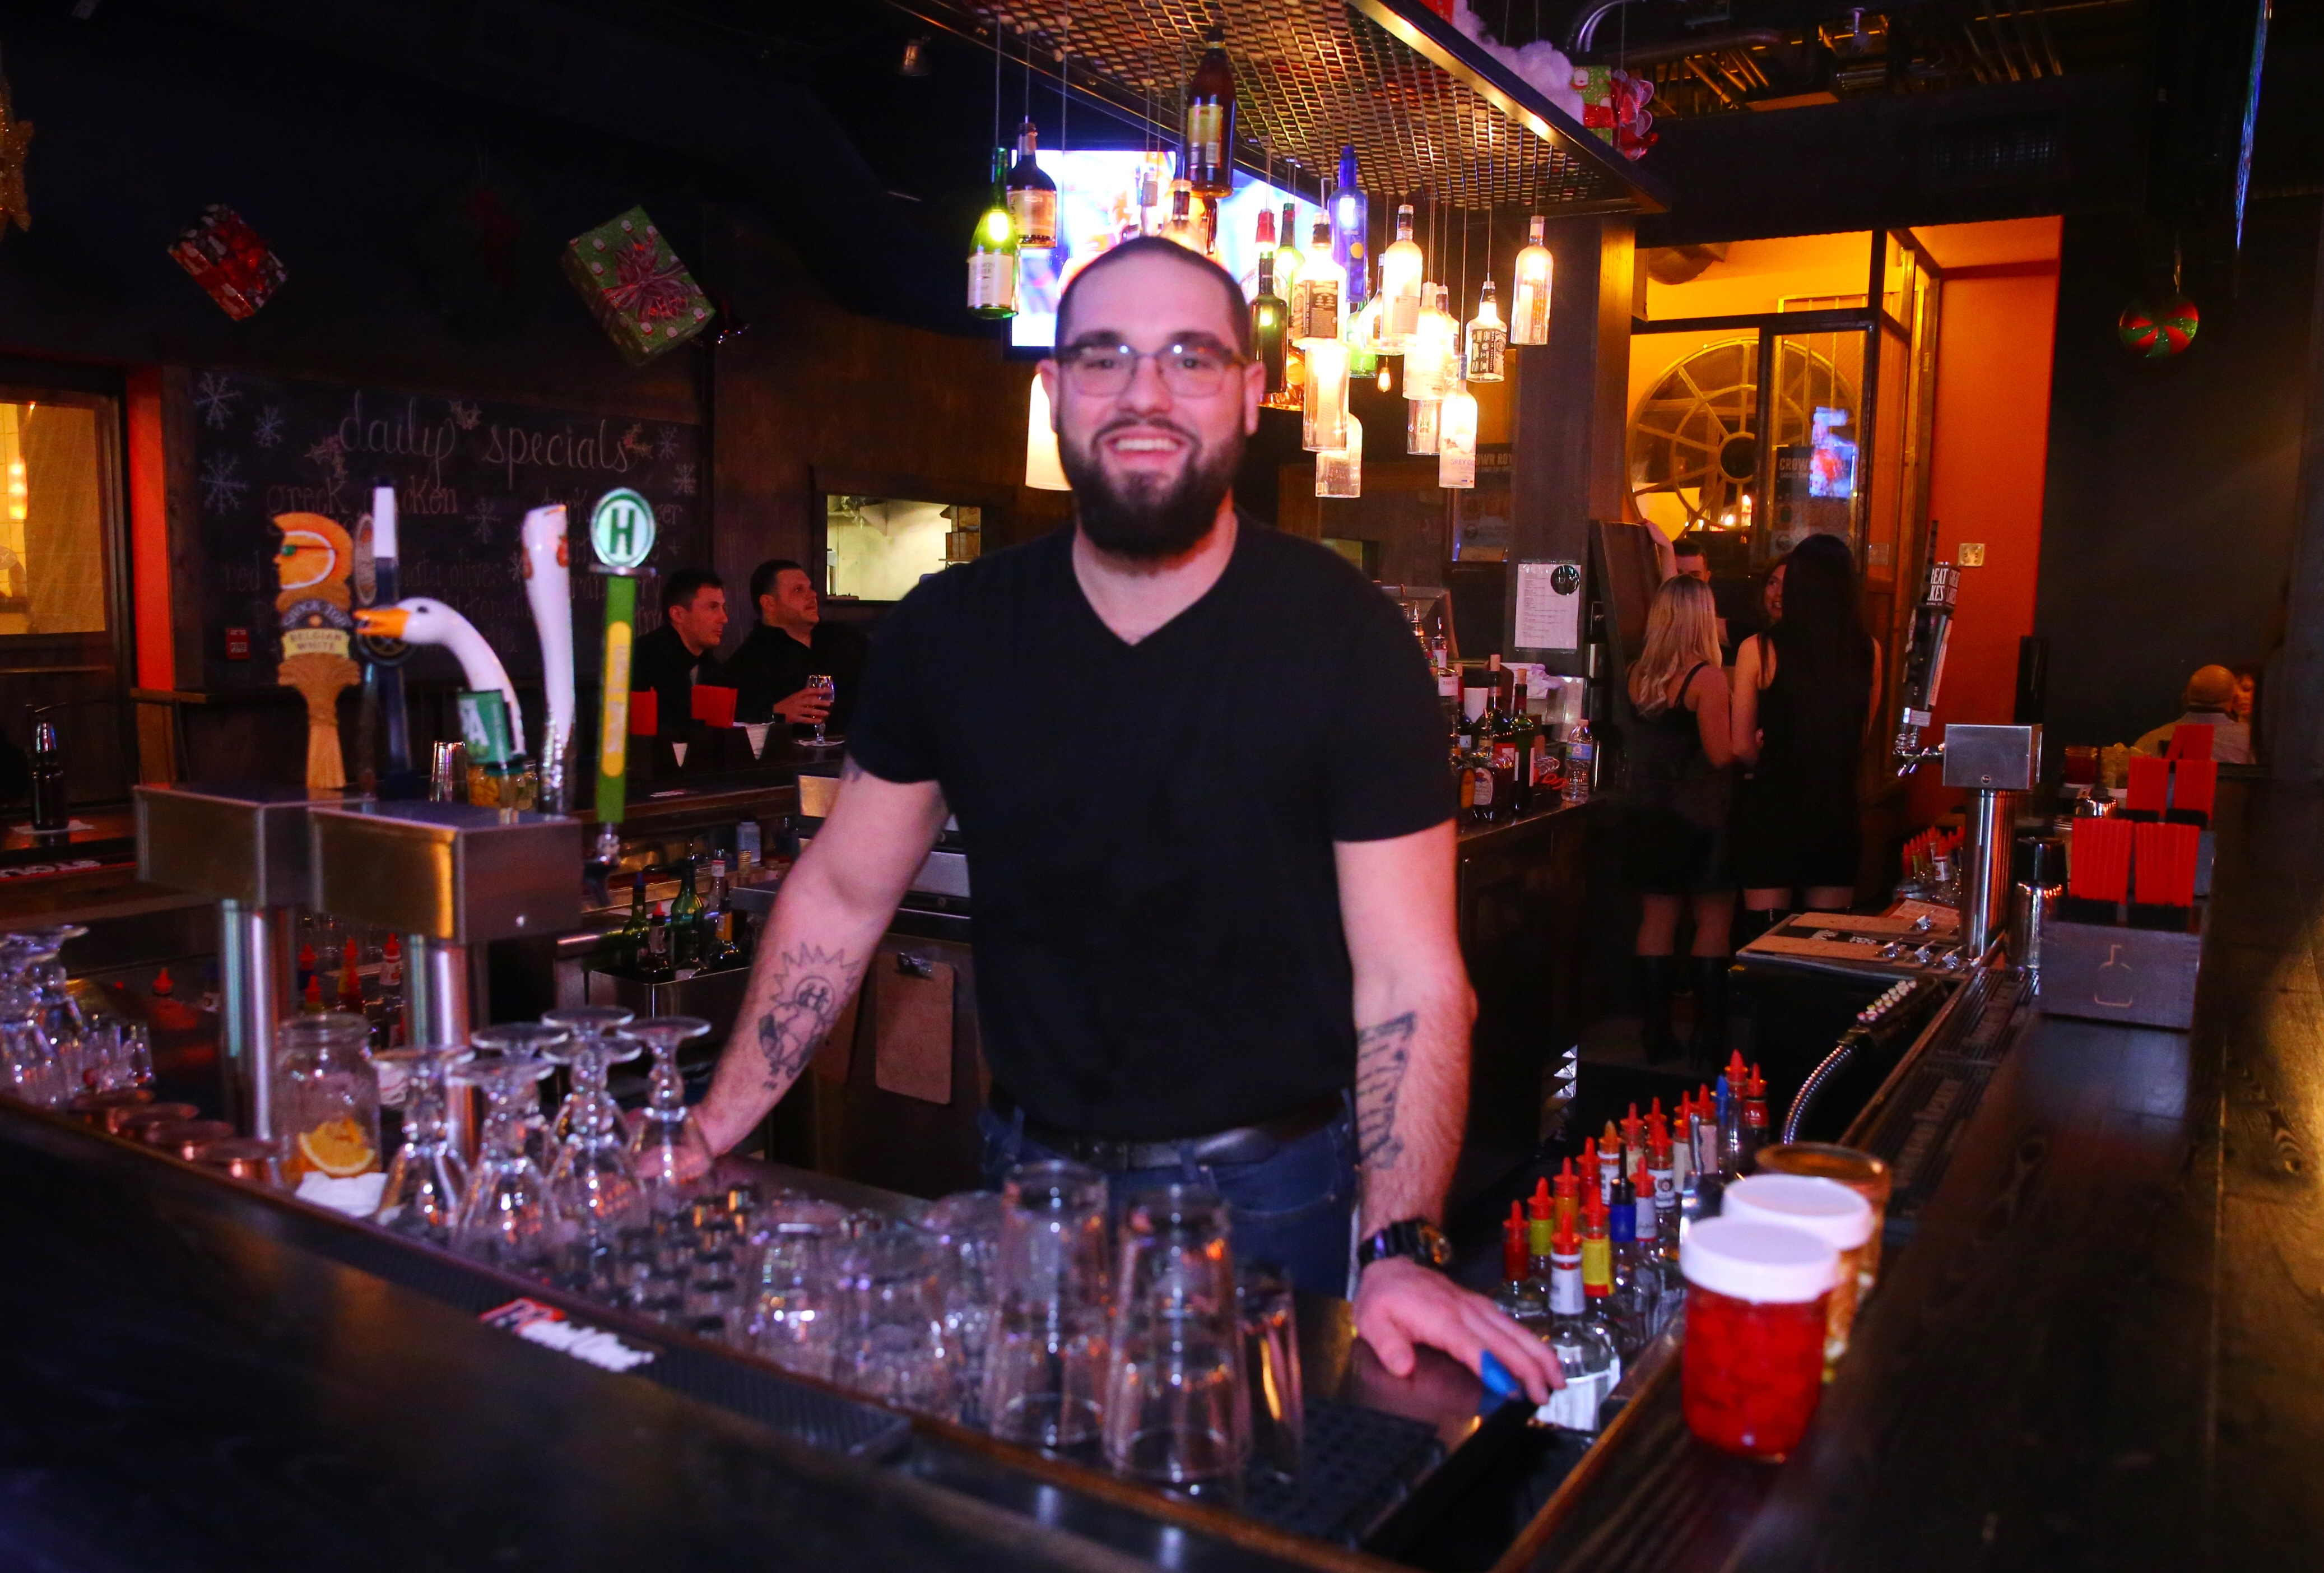 Ben Pulkudnik, a bar-back  at  SOHO, said his resolution is to be more positive in 2017.  (John Hickey/Buffalo News)